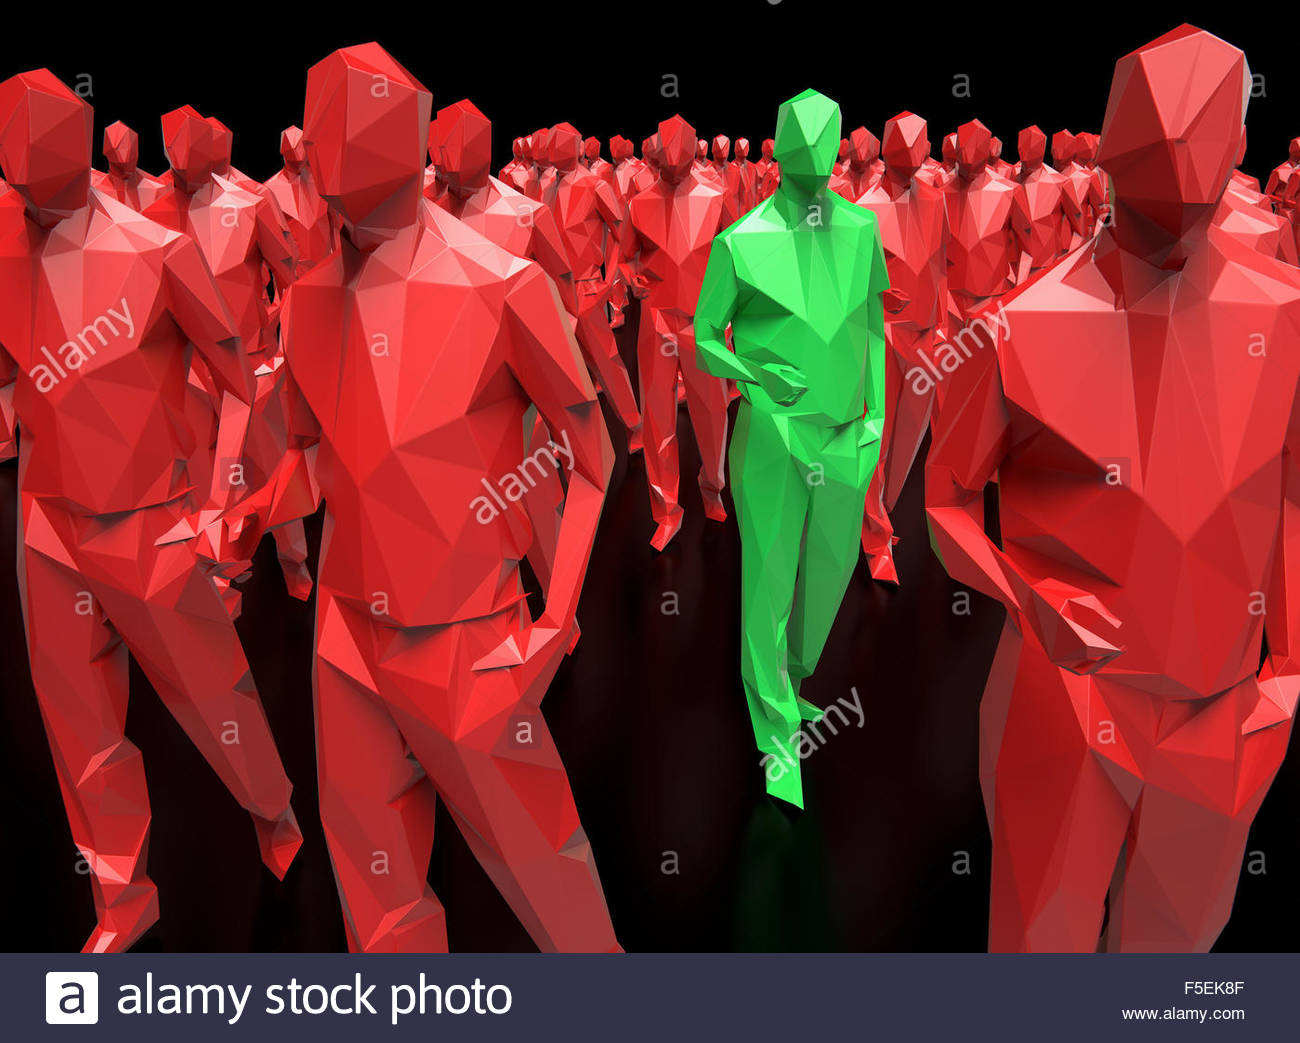 Green plastic man standing out from the crowd of identical red men - Stock Image